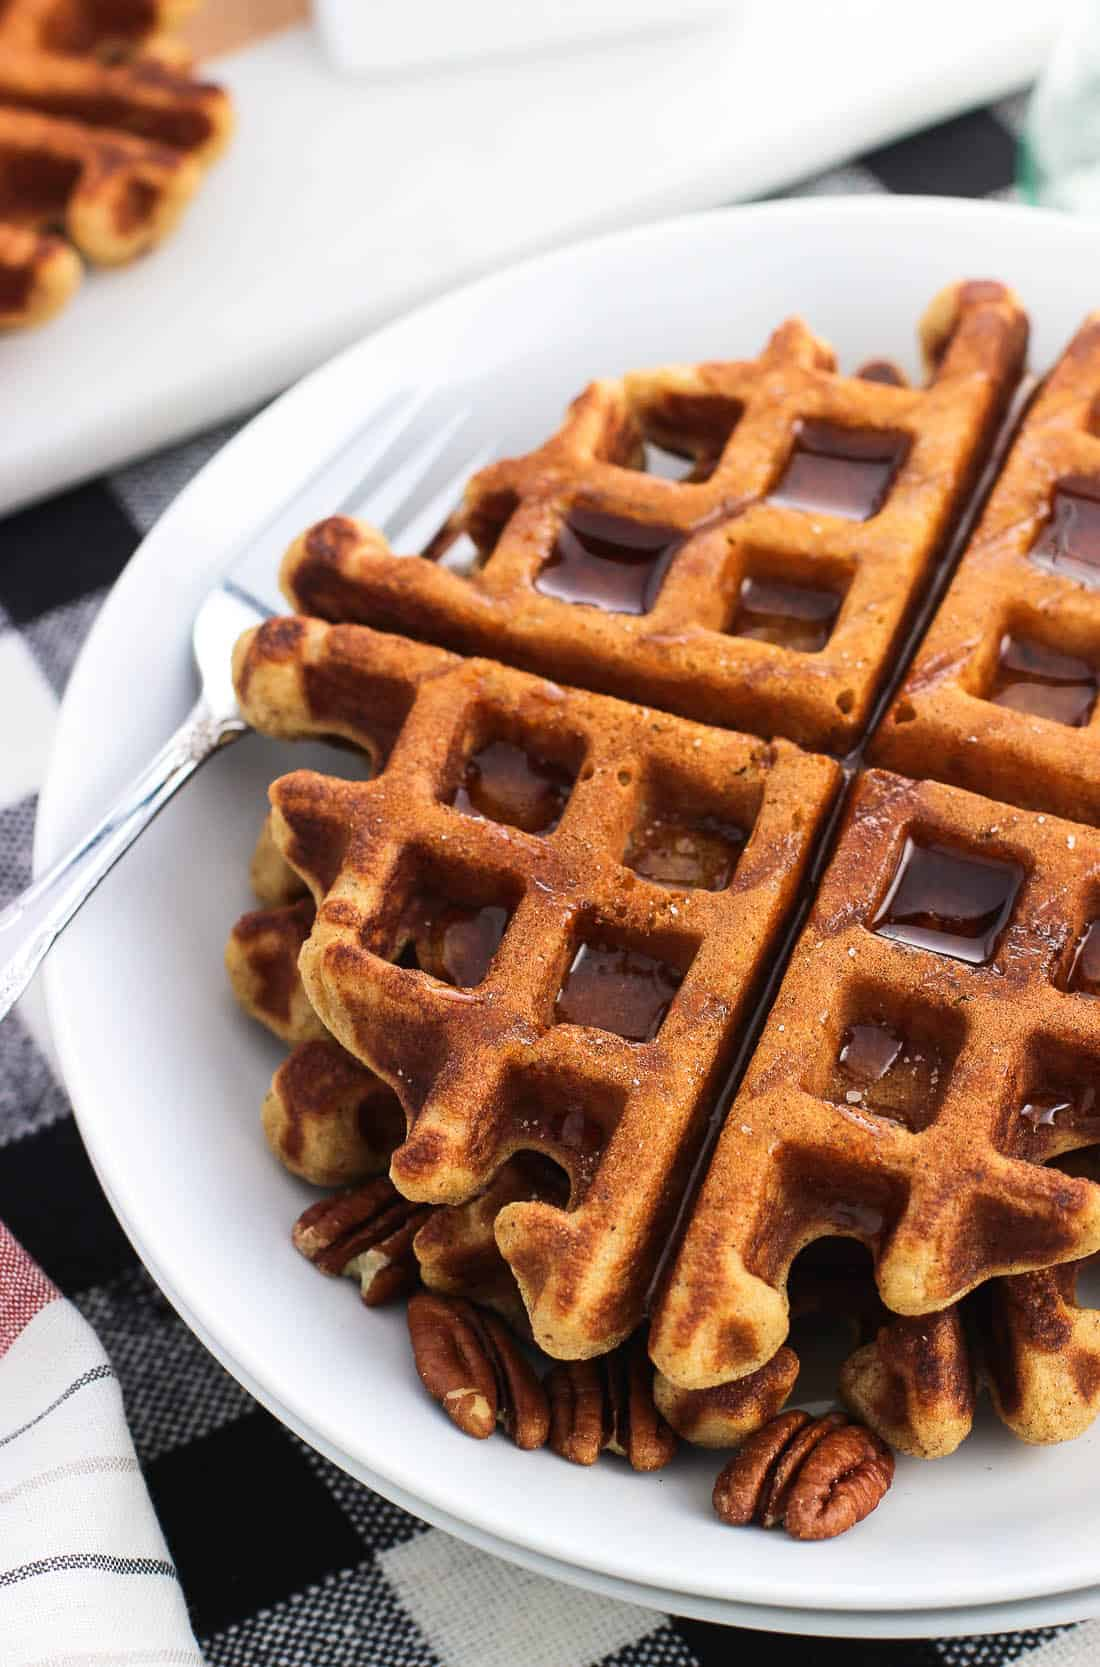 Two waffles on a plate served with maple syrup and pecans